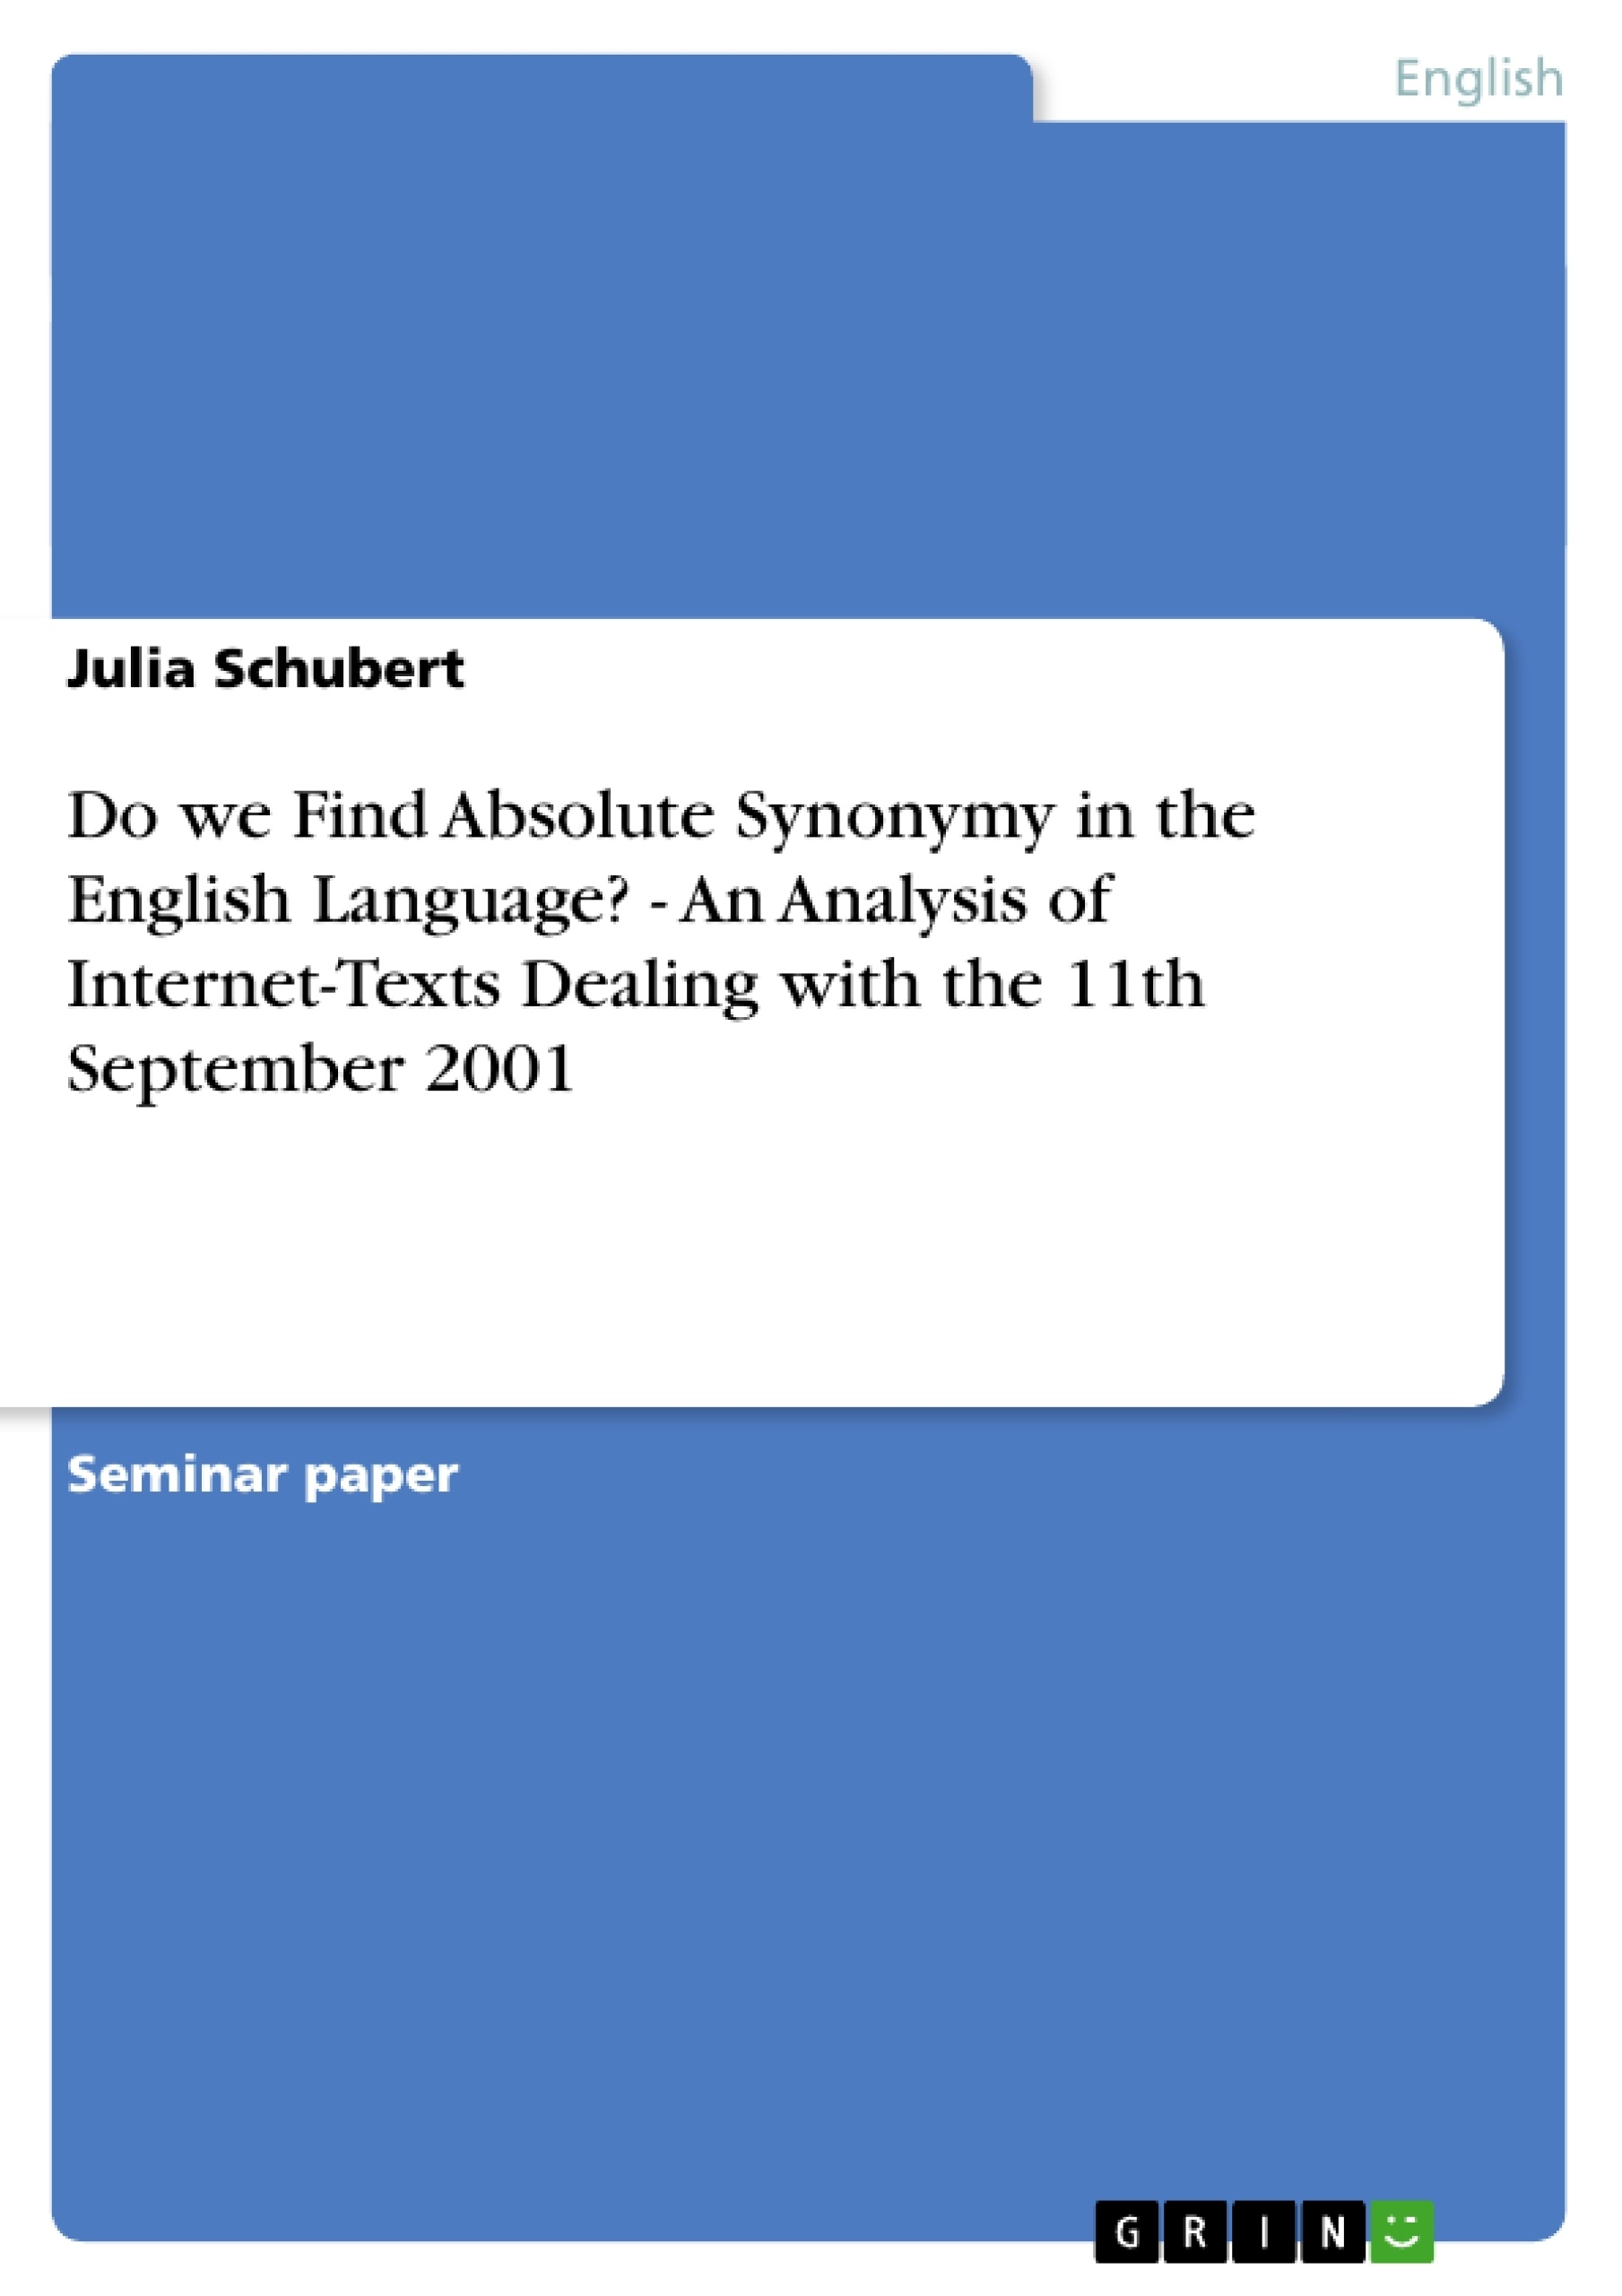 Title: Do we Find Absolute Synonymy in the English Language? - An Analysis of Internet-Texts Dealing with the 11th September 2001